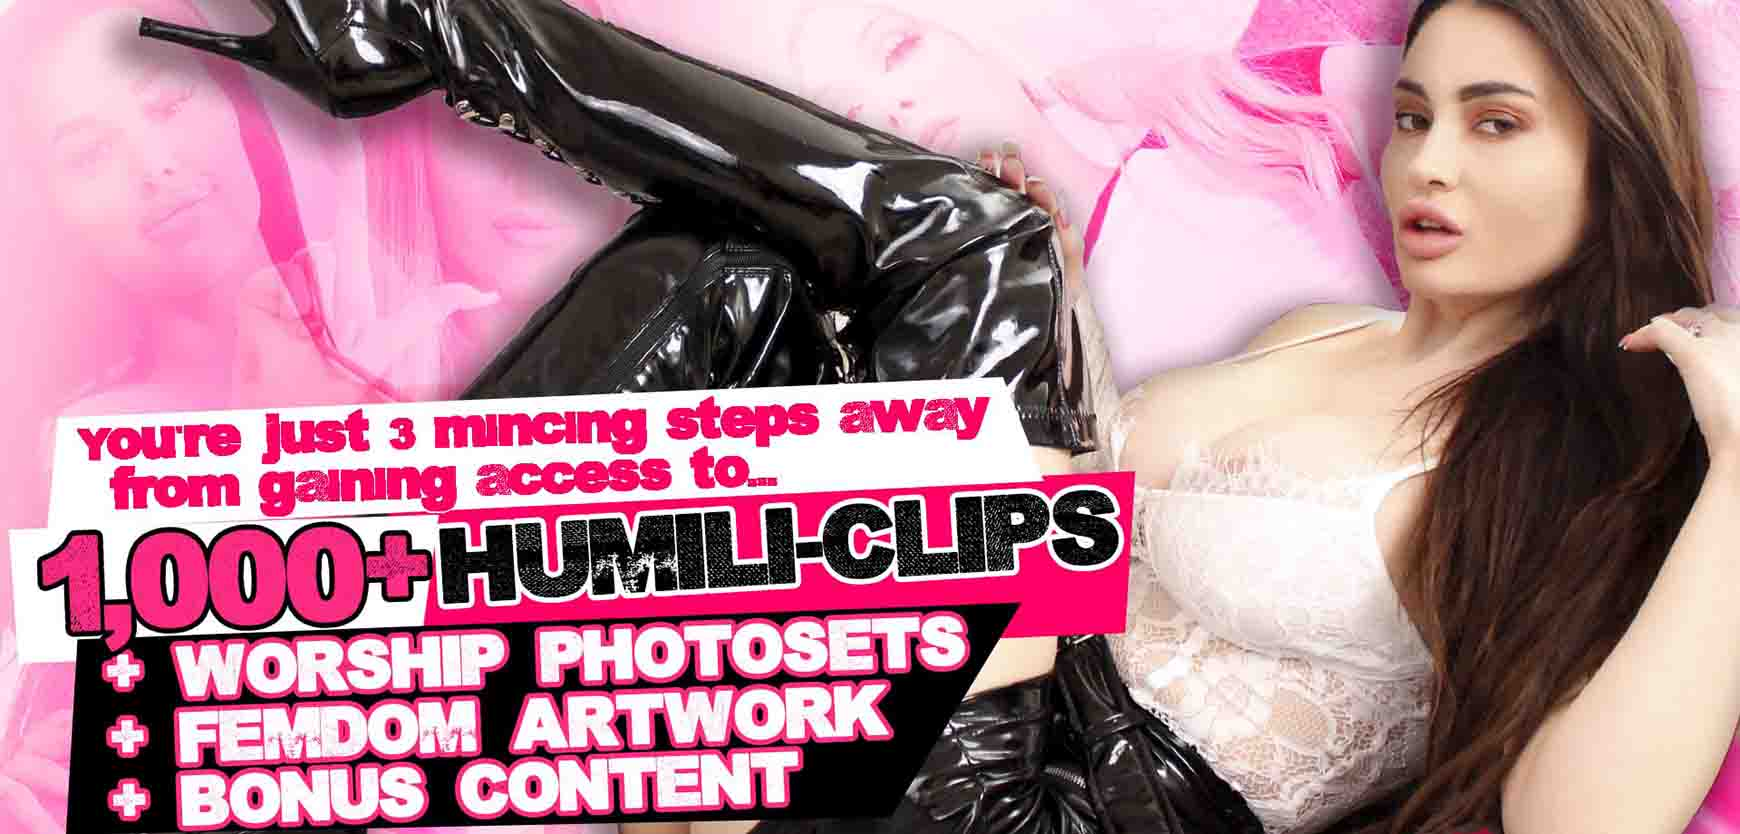 Sign-up for 1000+ humiliation video clips